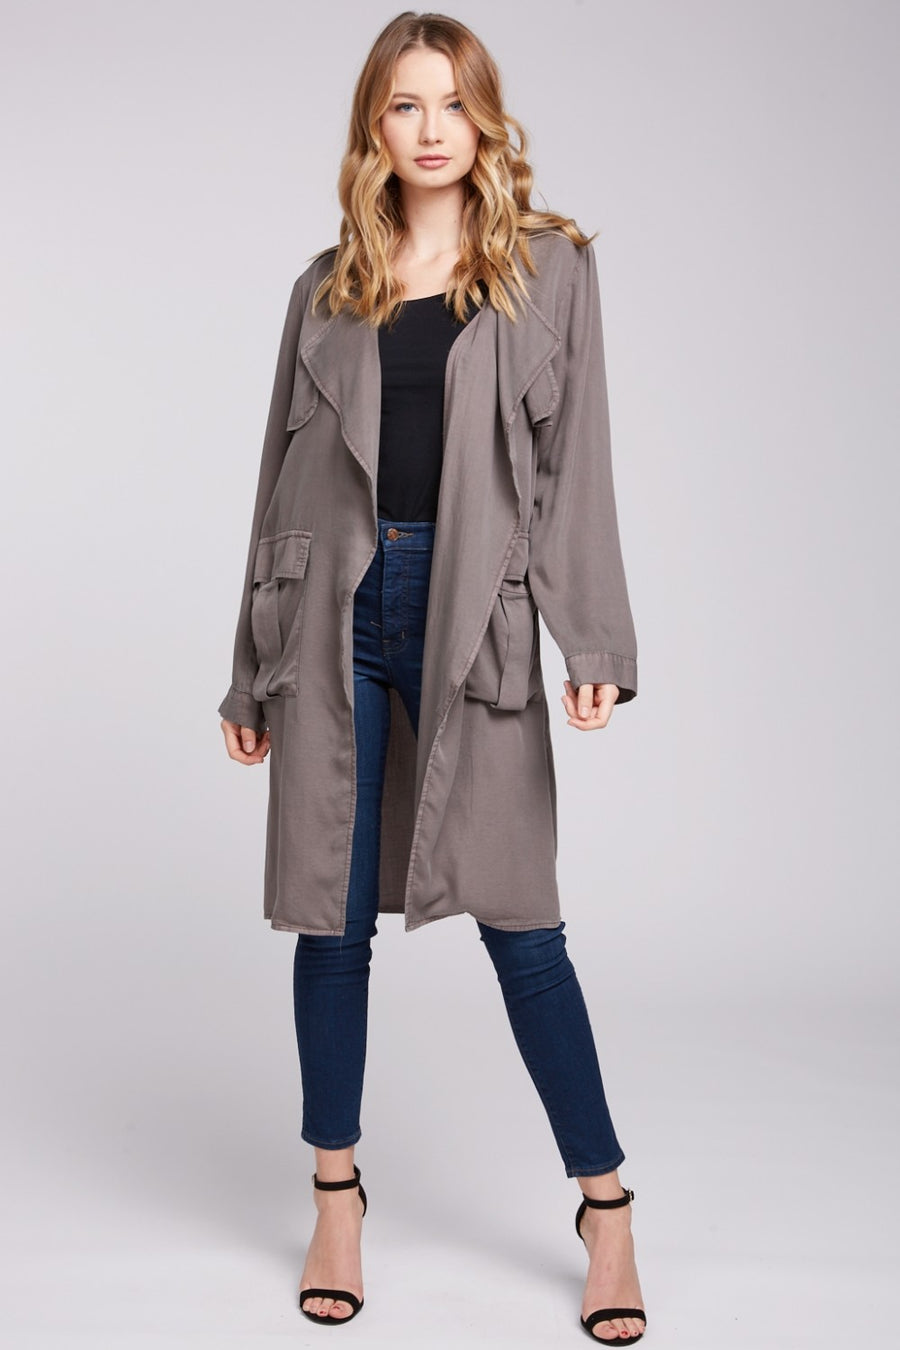 Detective Brown Trench Coat - Beau&Arrow